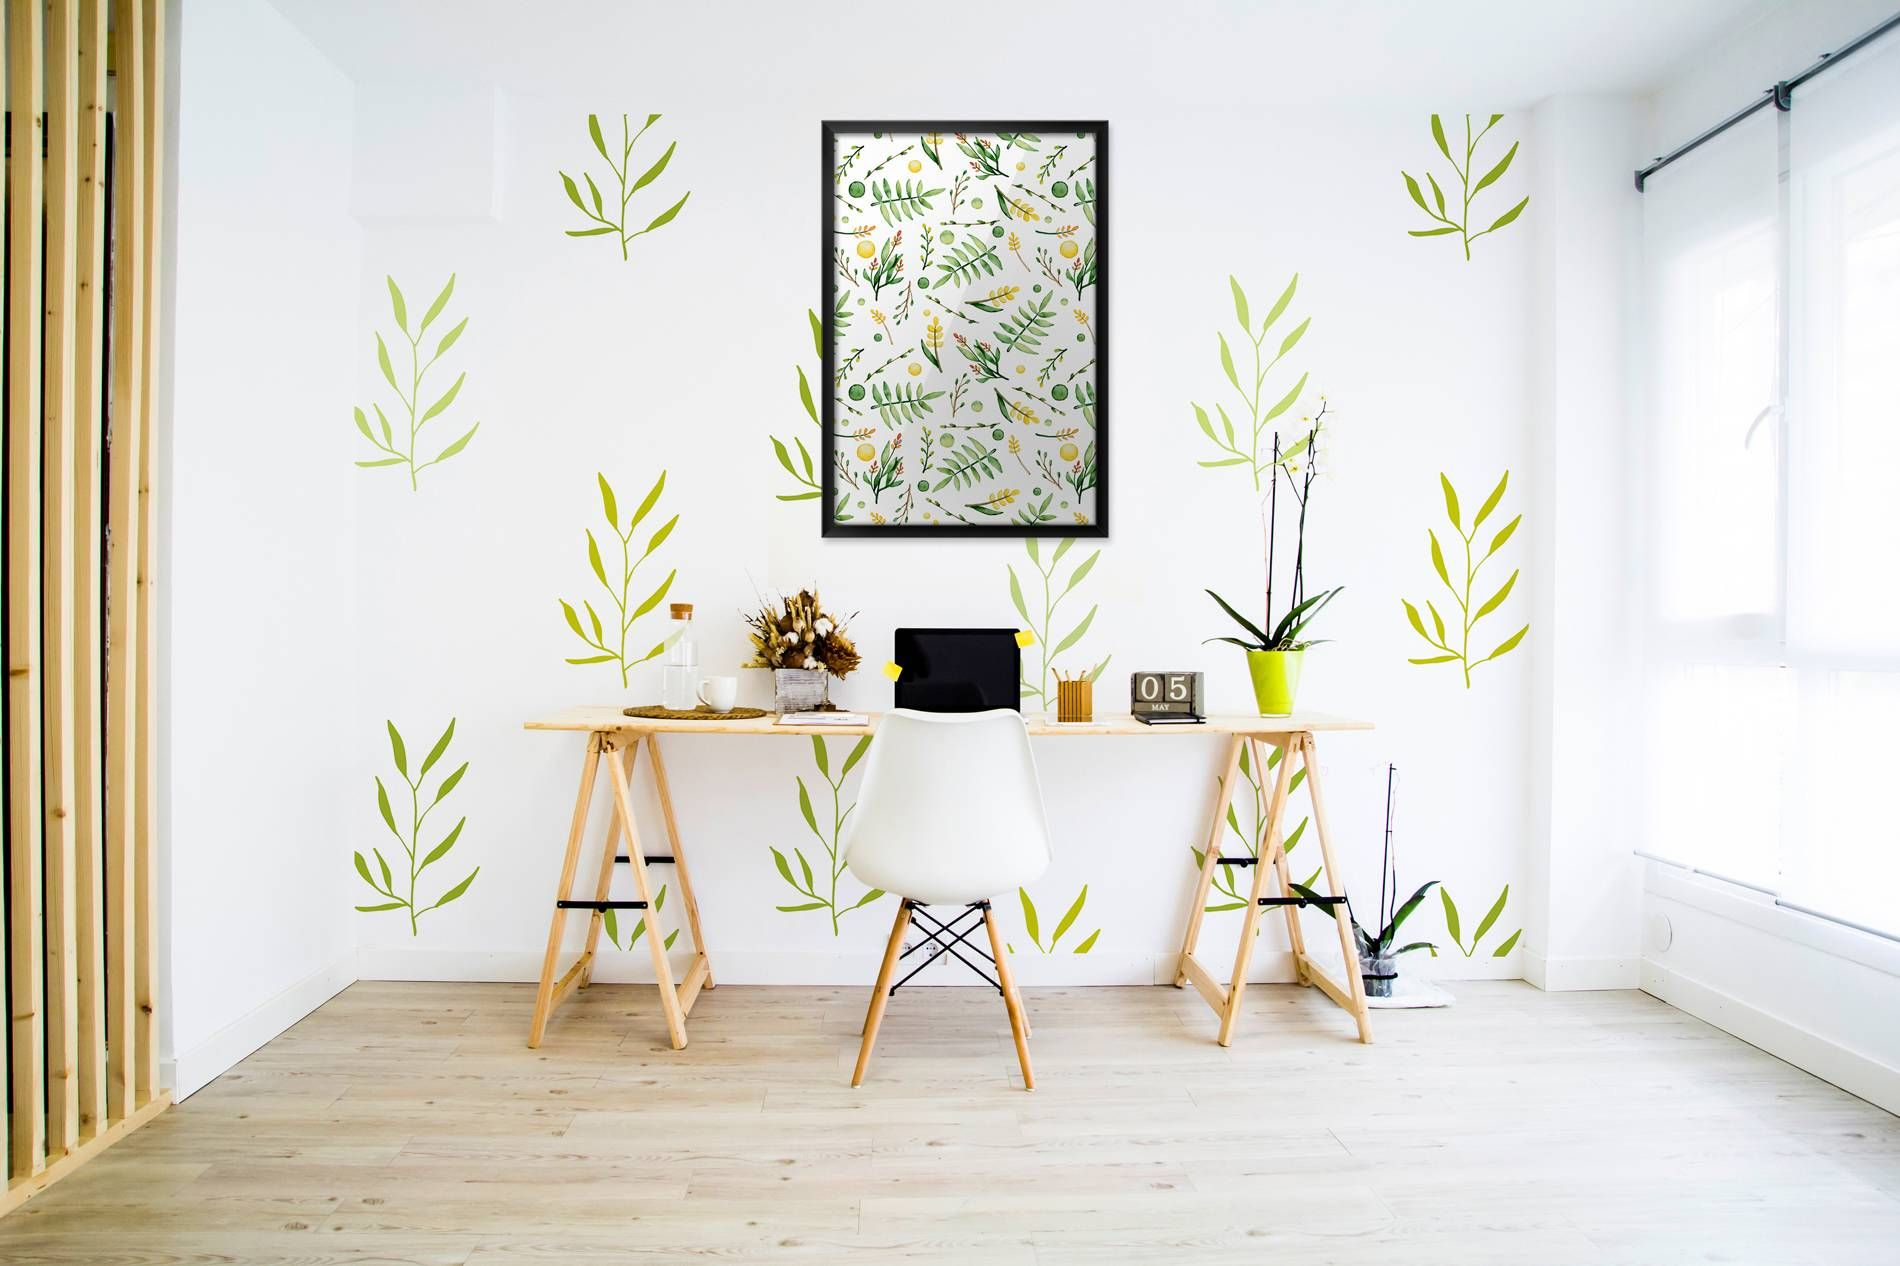 Twigs and herbs Contemporary Wall Murals Posters Nature